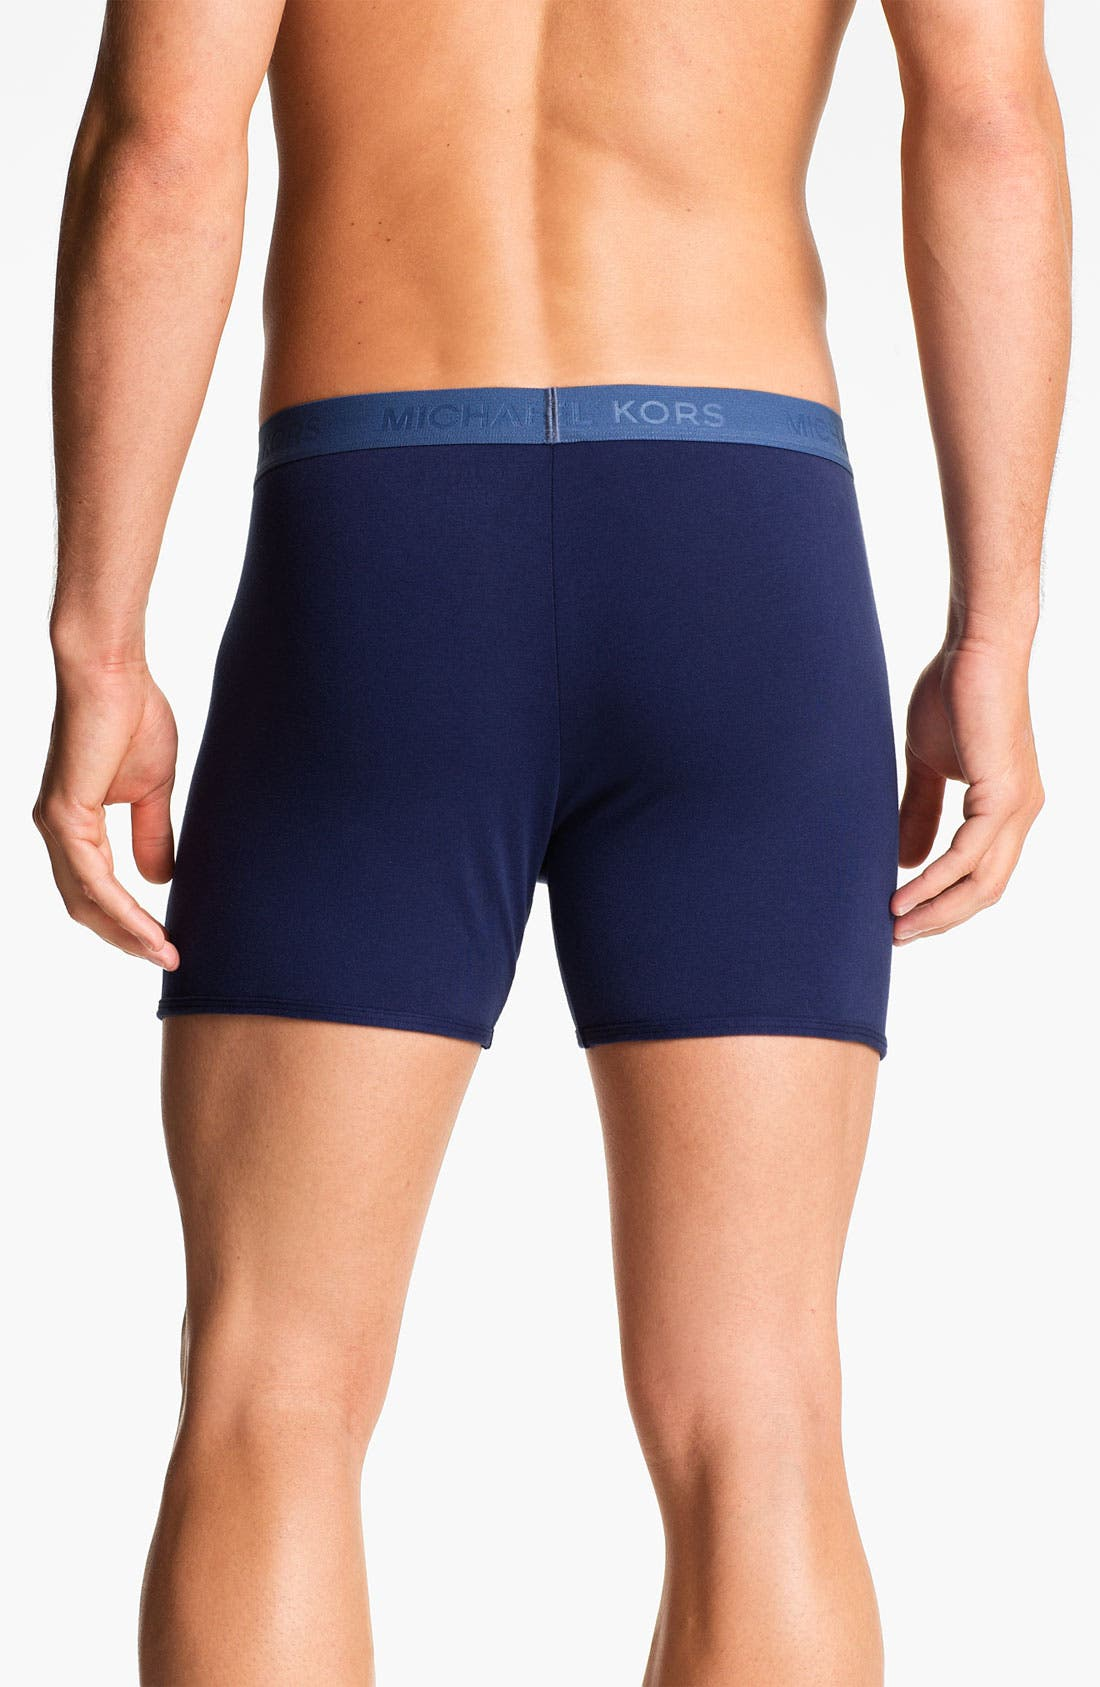 Alternate Image 2  - Michael Kors 'Free Fit' Boxer Briefs